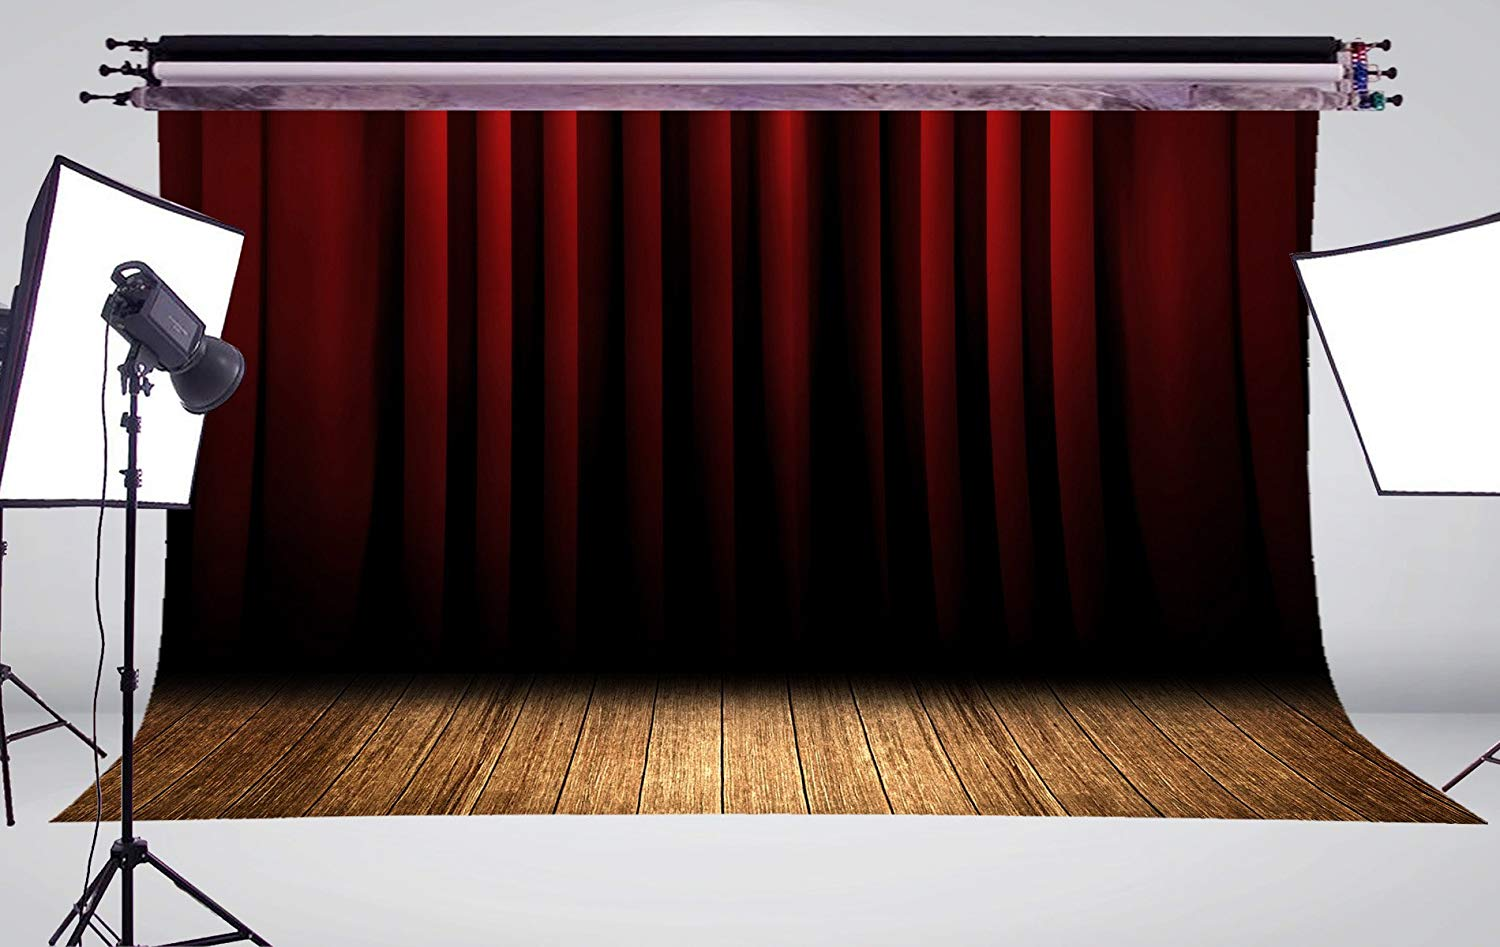 Image 3 - Stratified Black Red Stage Curtain Backdrop Photo Studio Backgrounds 5x7ft Booth Shoot Props-in Photo Studio Accessories from Consumer Electronics